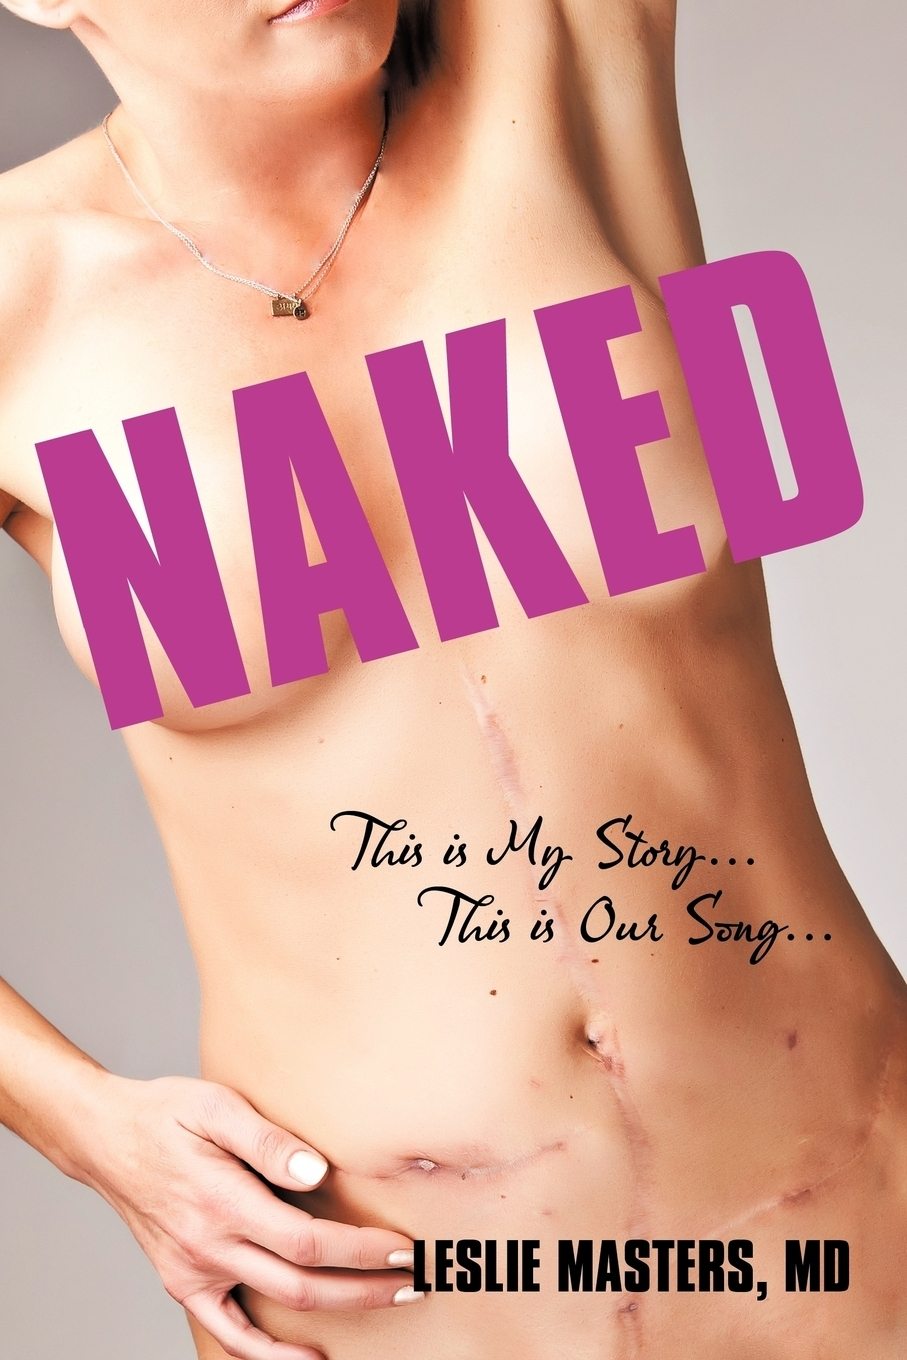 Leslie Masters MD. Naked. This Is My Story... This Is Our Song...